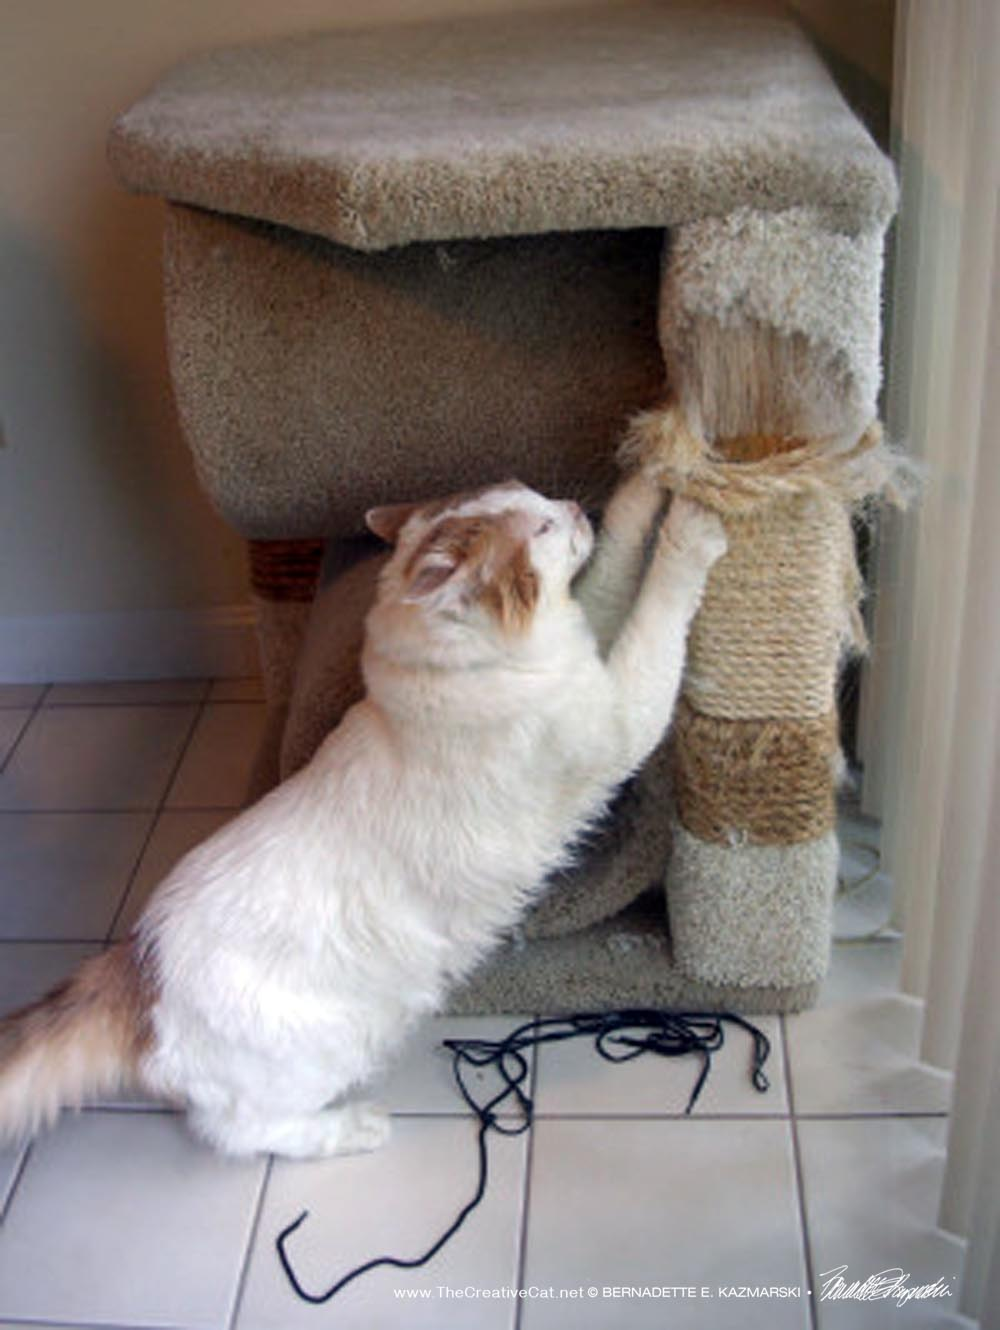 Scruffy and his scratching post by the door.